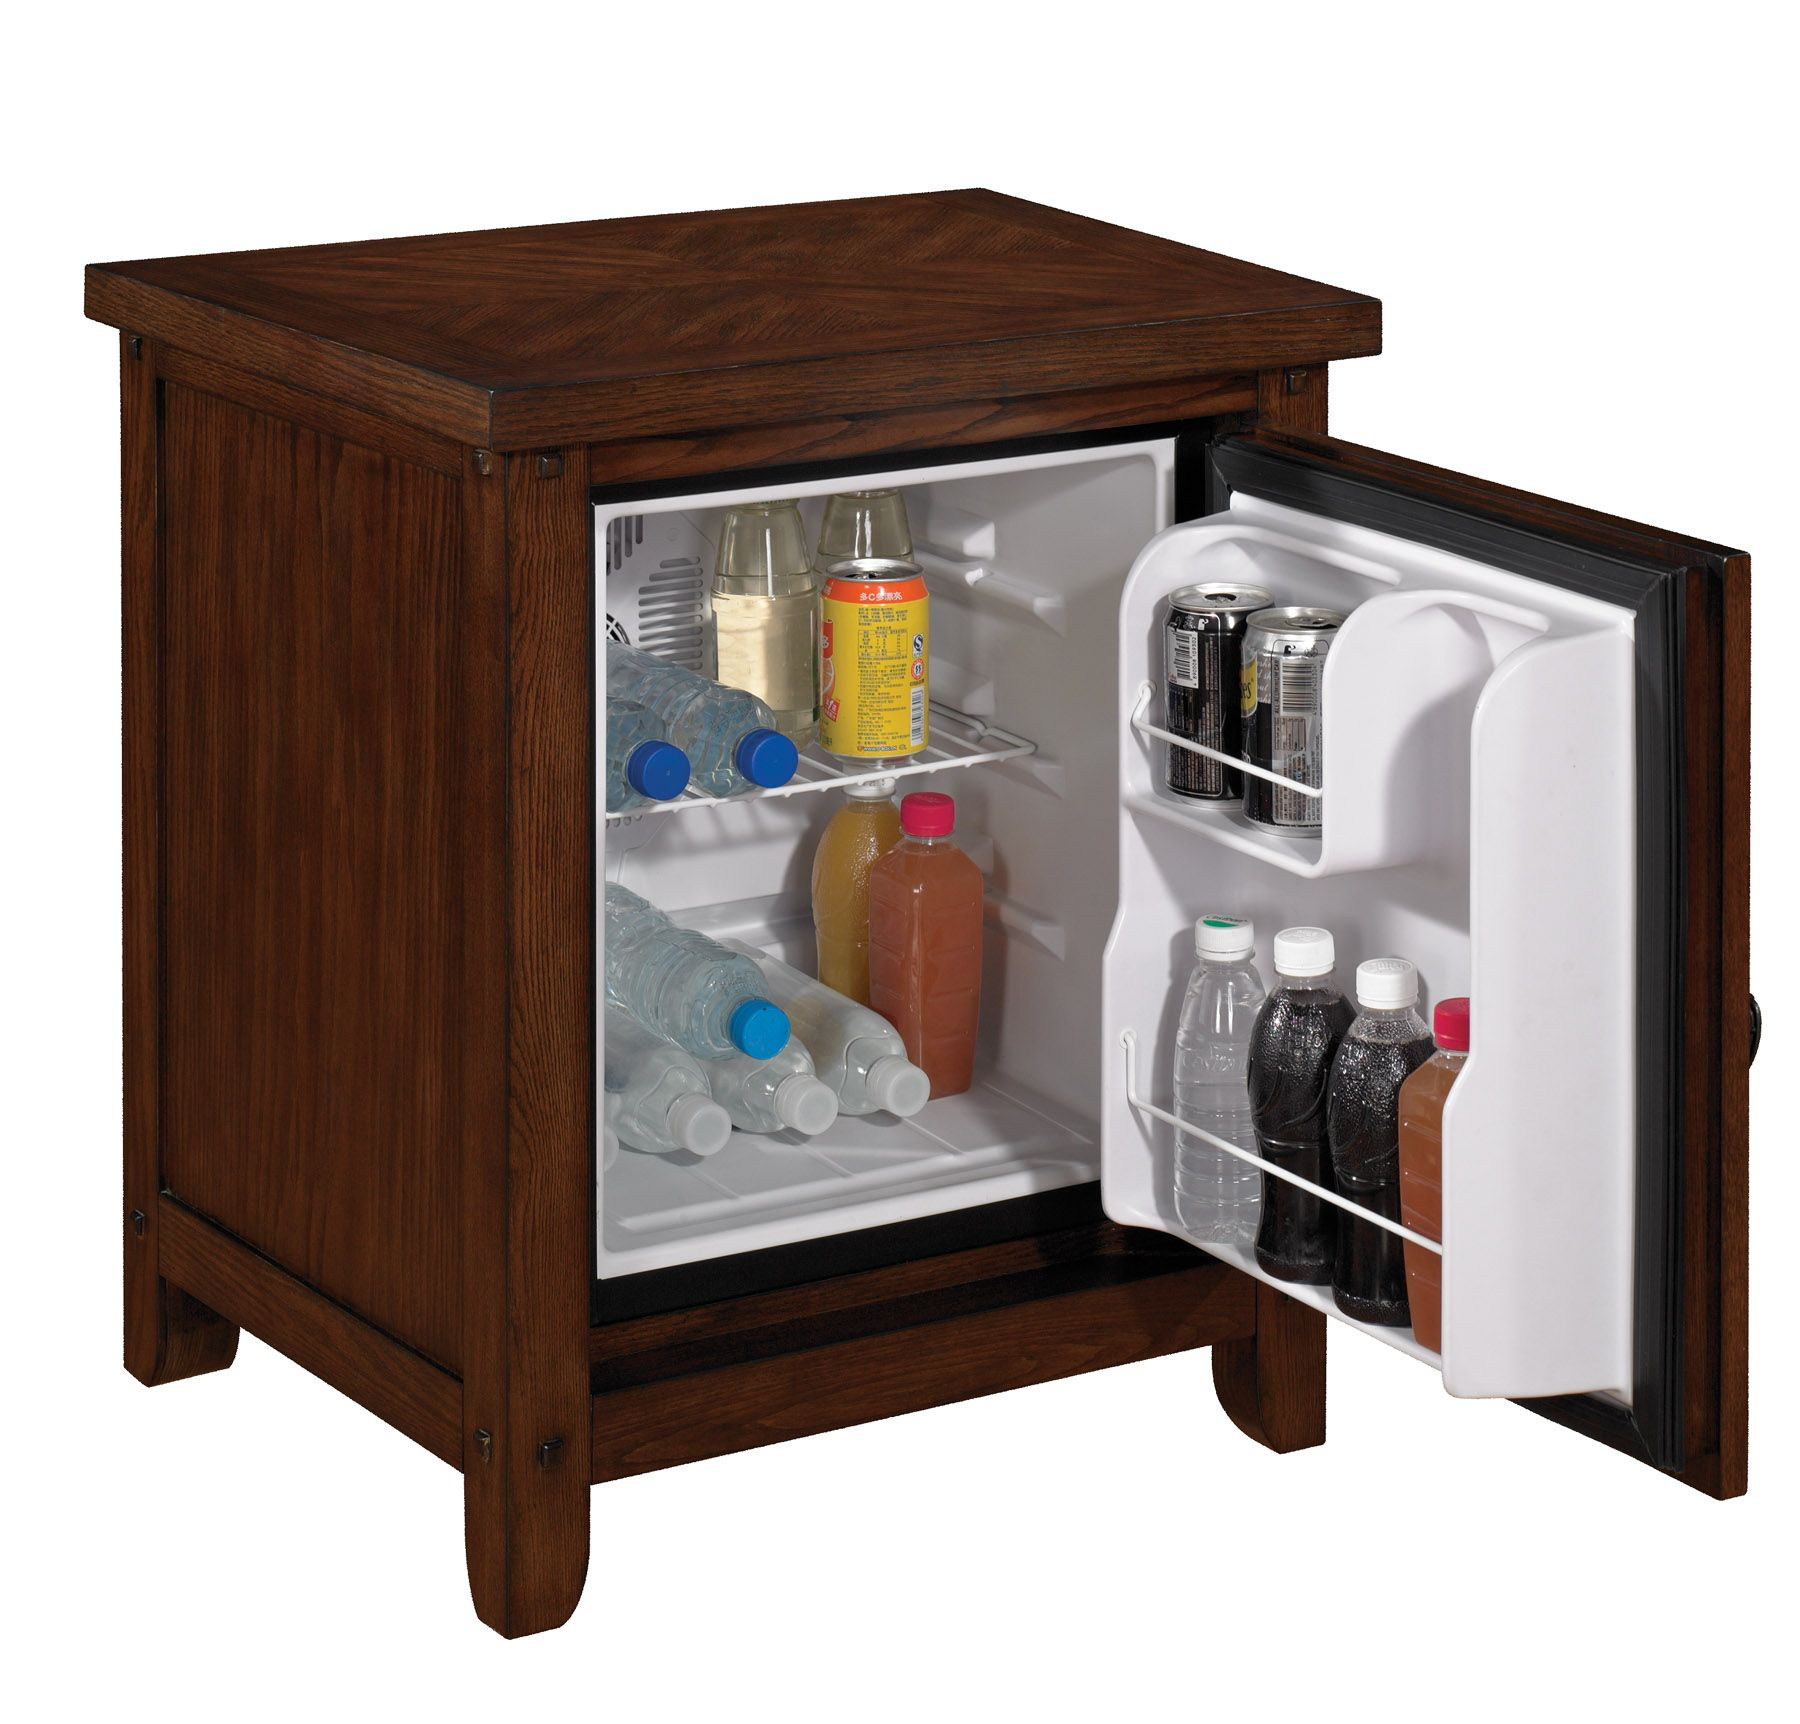 Hide That Bulky Dorm Fridge In Your Home Or Office With This Beautiful Twin Star Fridge Cabinet Thehome Com